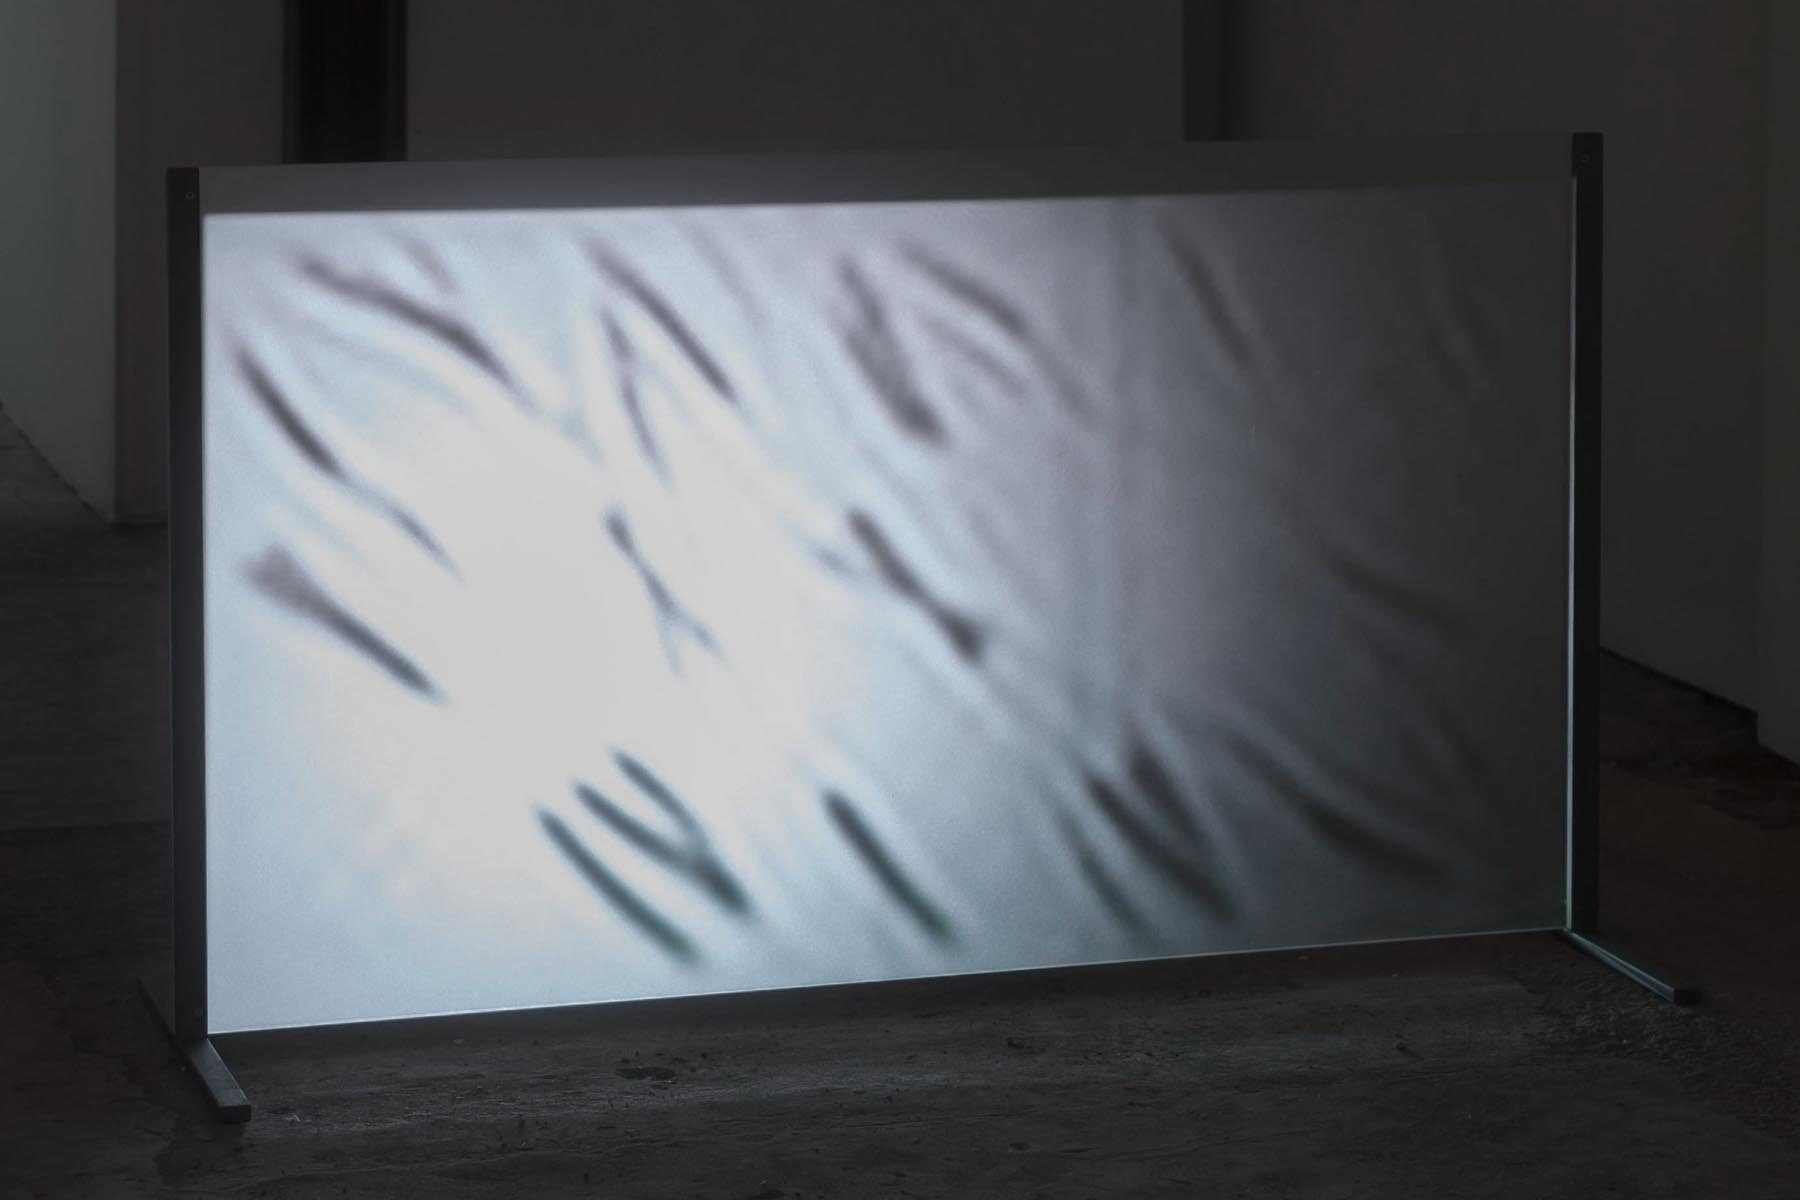 Michele Spanghero, Translucide, 2009-2017, video, sound, loop